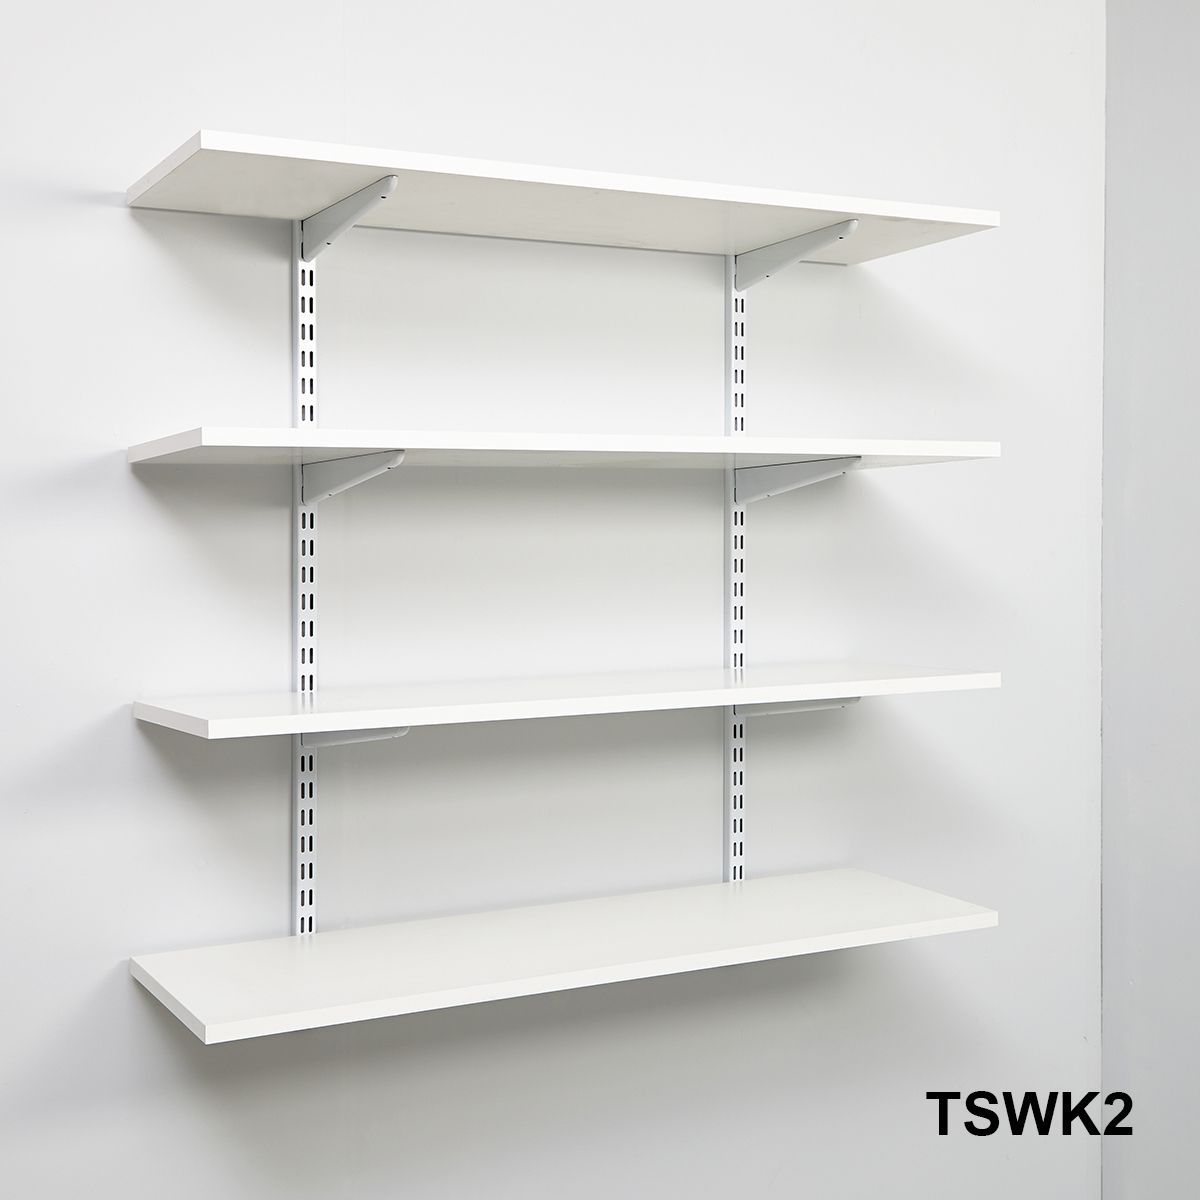 Wall Mounted Garage Shelves Wall Mounted Bookshelves Wall Bookshelves Wall Shelves